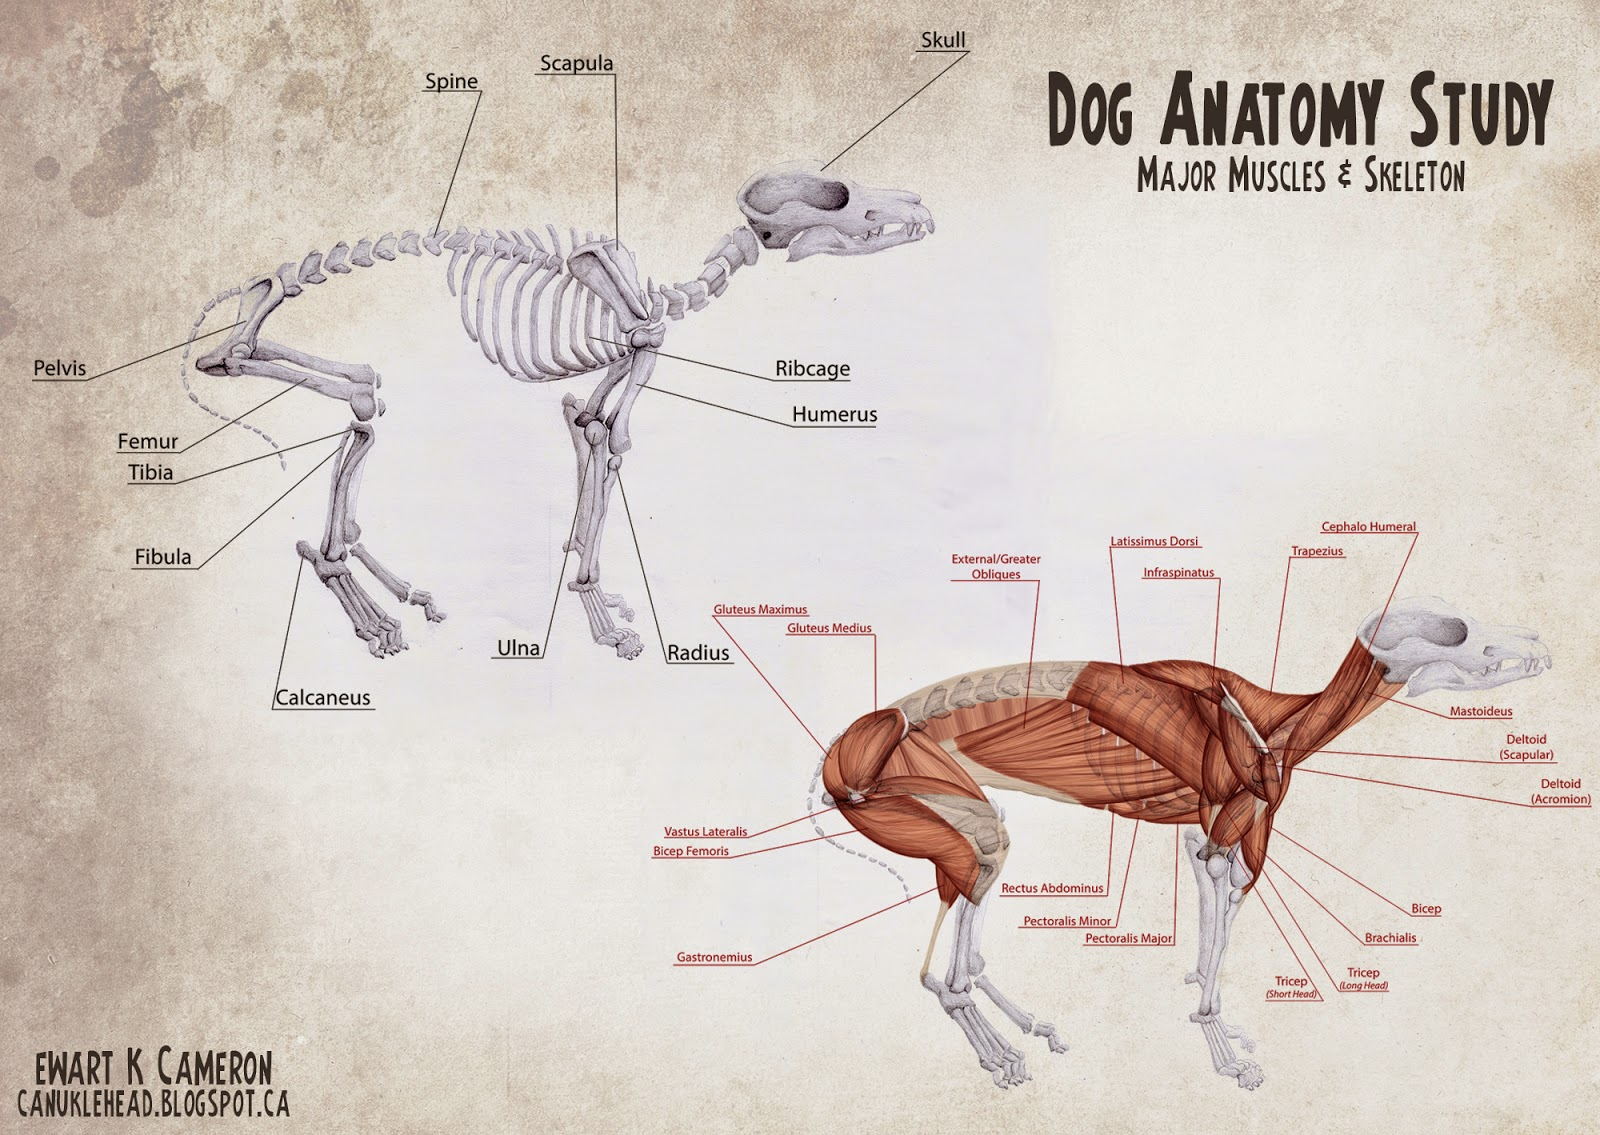 Ewart K Cameron: Dog Anatomy Study - Skeleton and Major Muscles